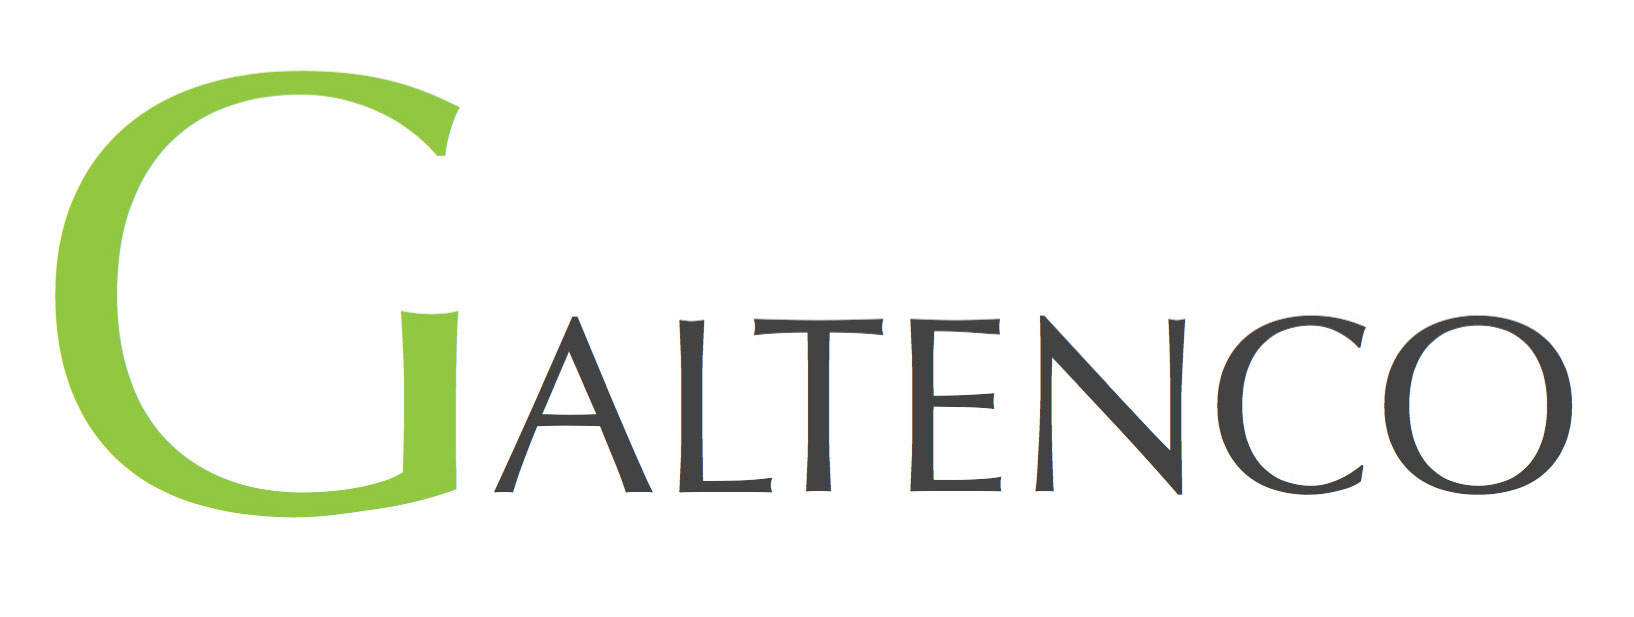 Galtenco-Offical-Logo